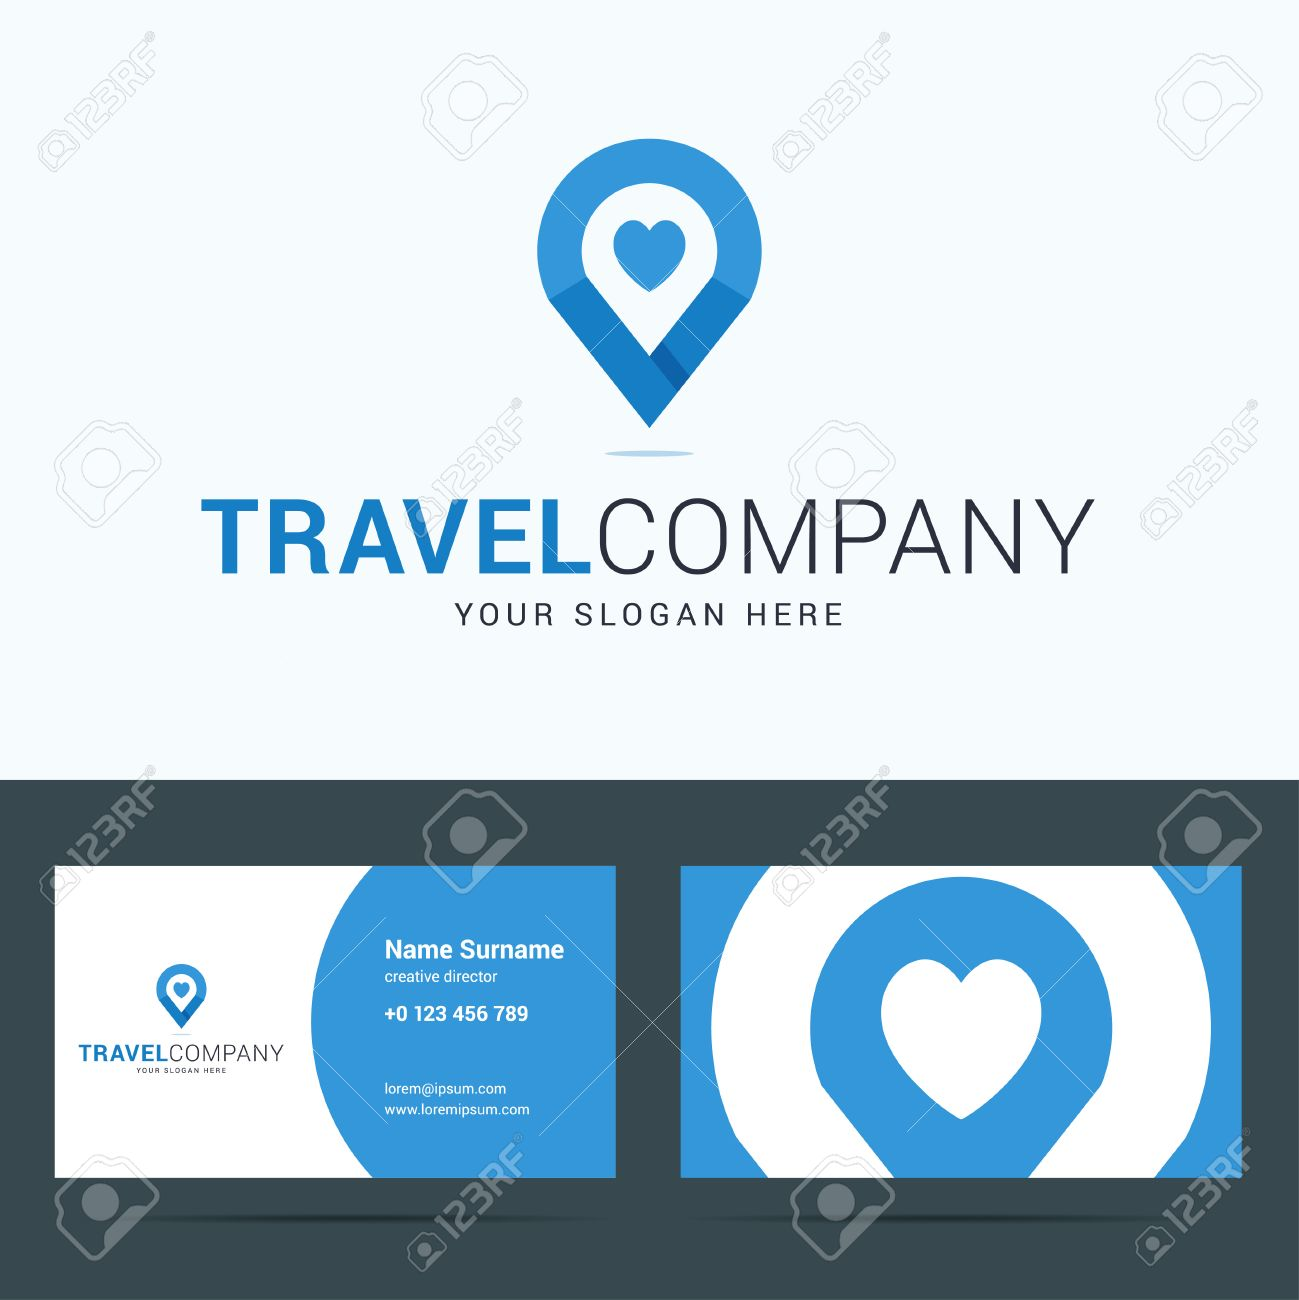 Logo and business card template for travel company map pointer logo and business card template for travel company map pointer sign with heart shape colourmoves